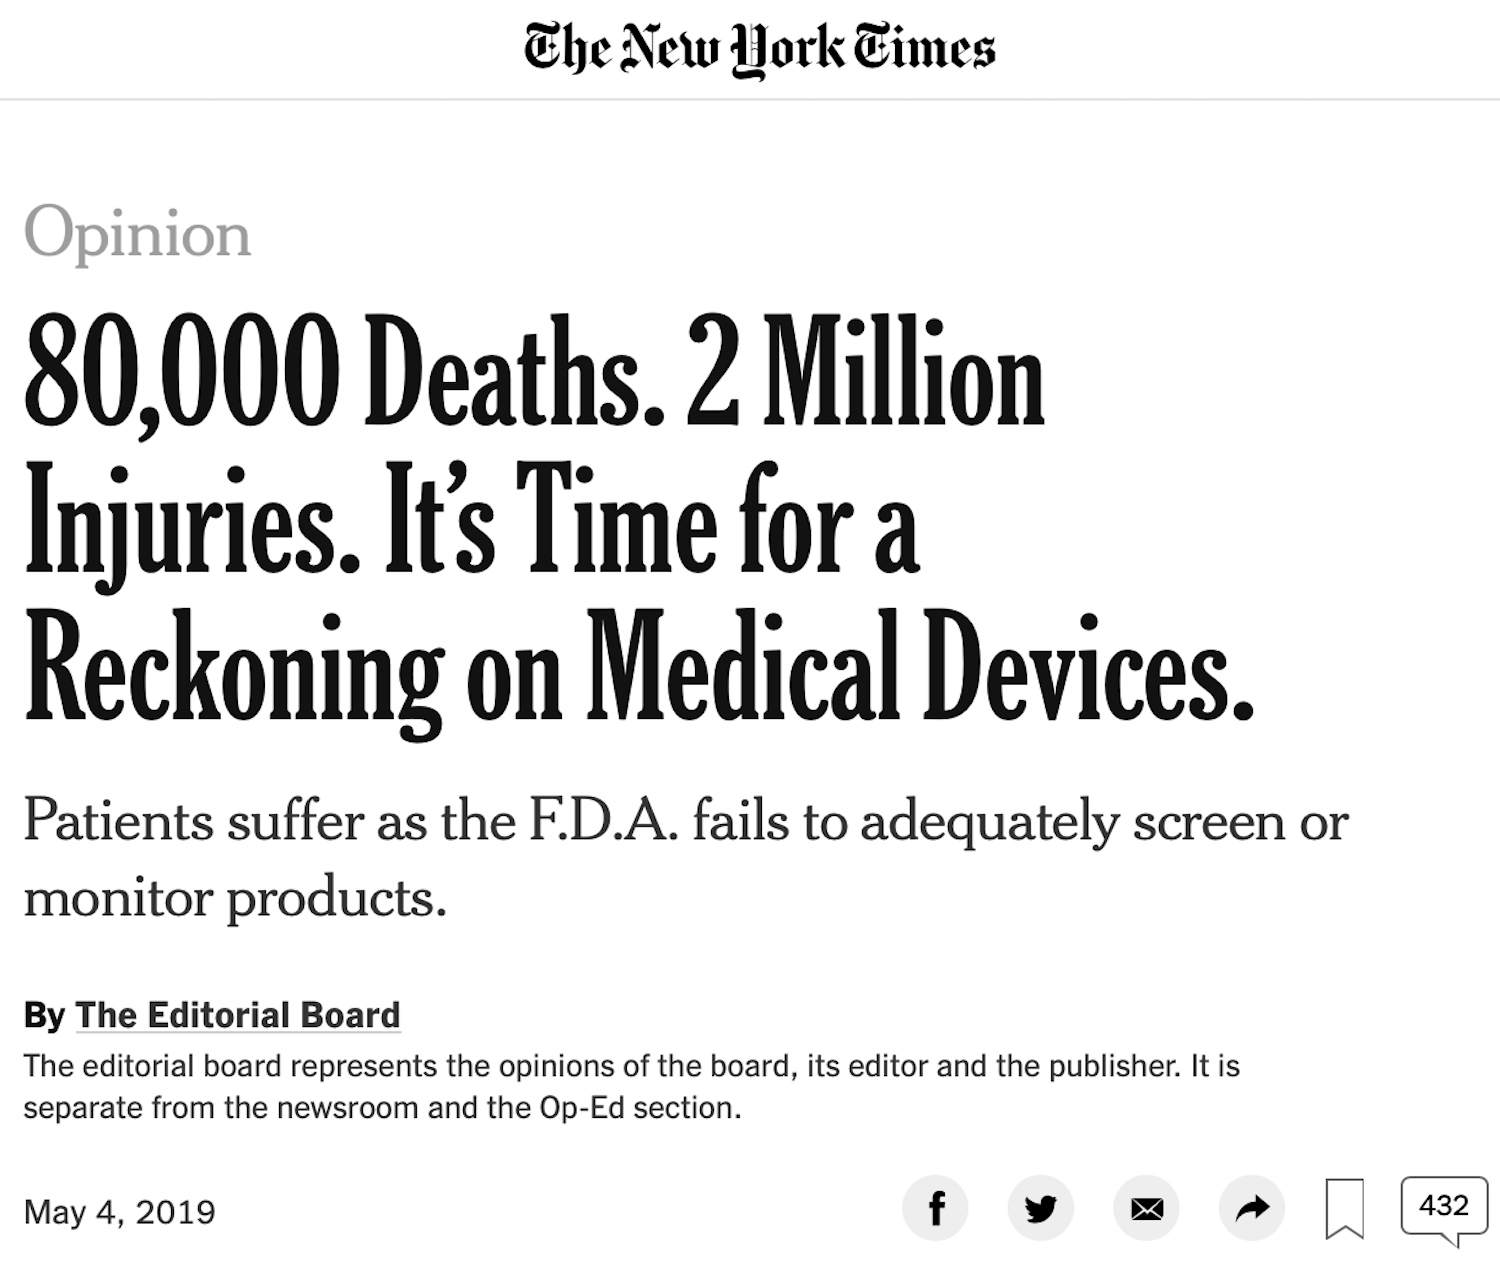 May 4, 2019 - New York Times